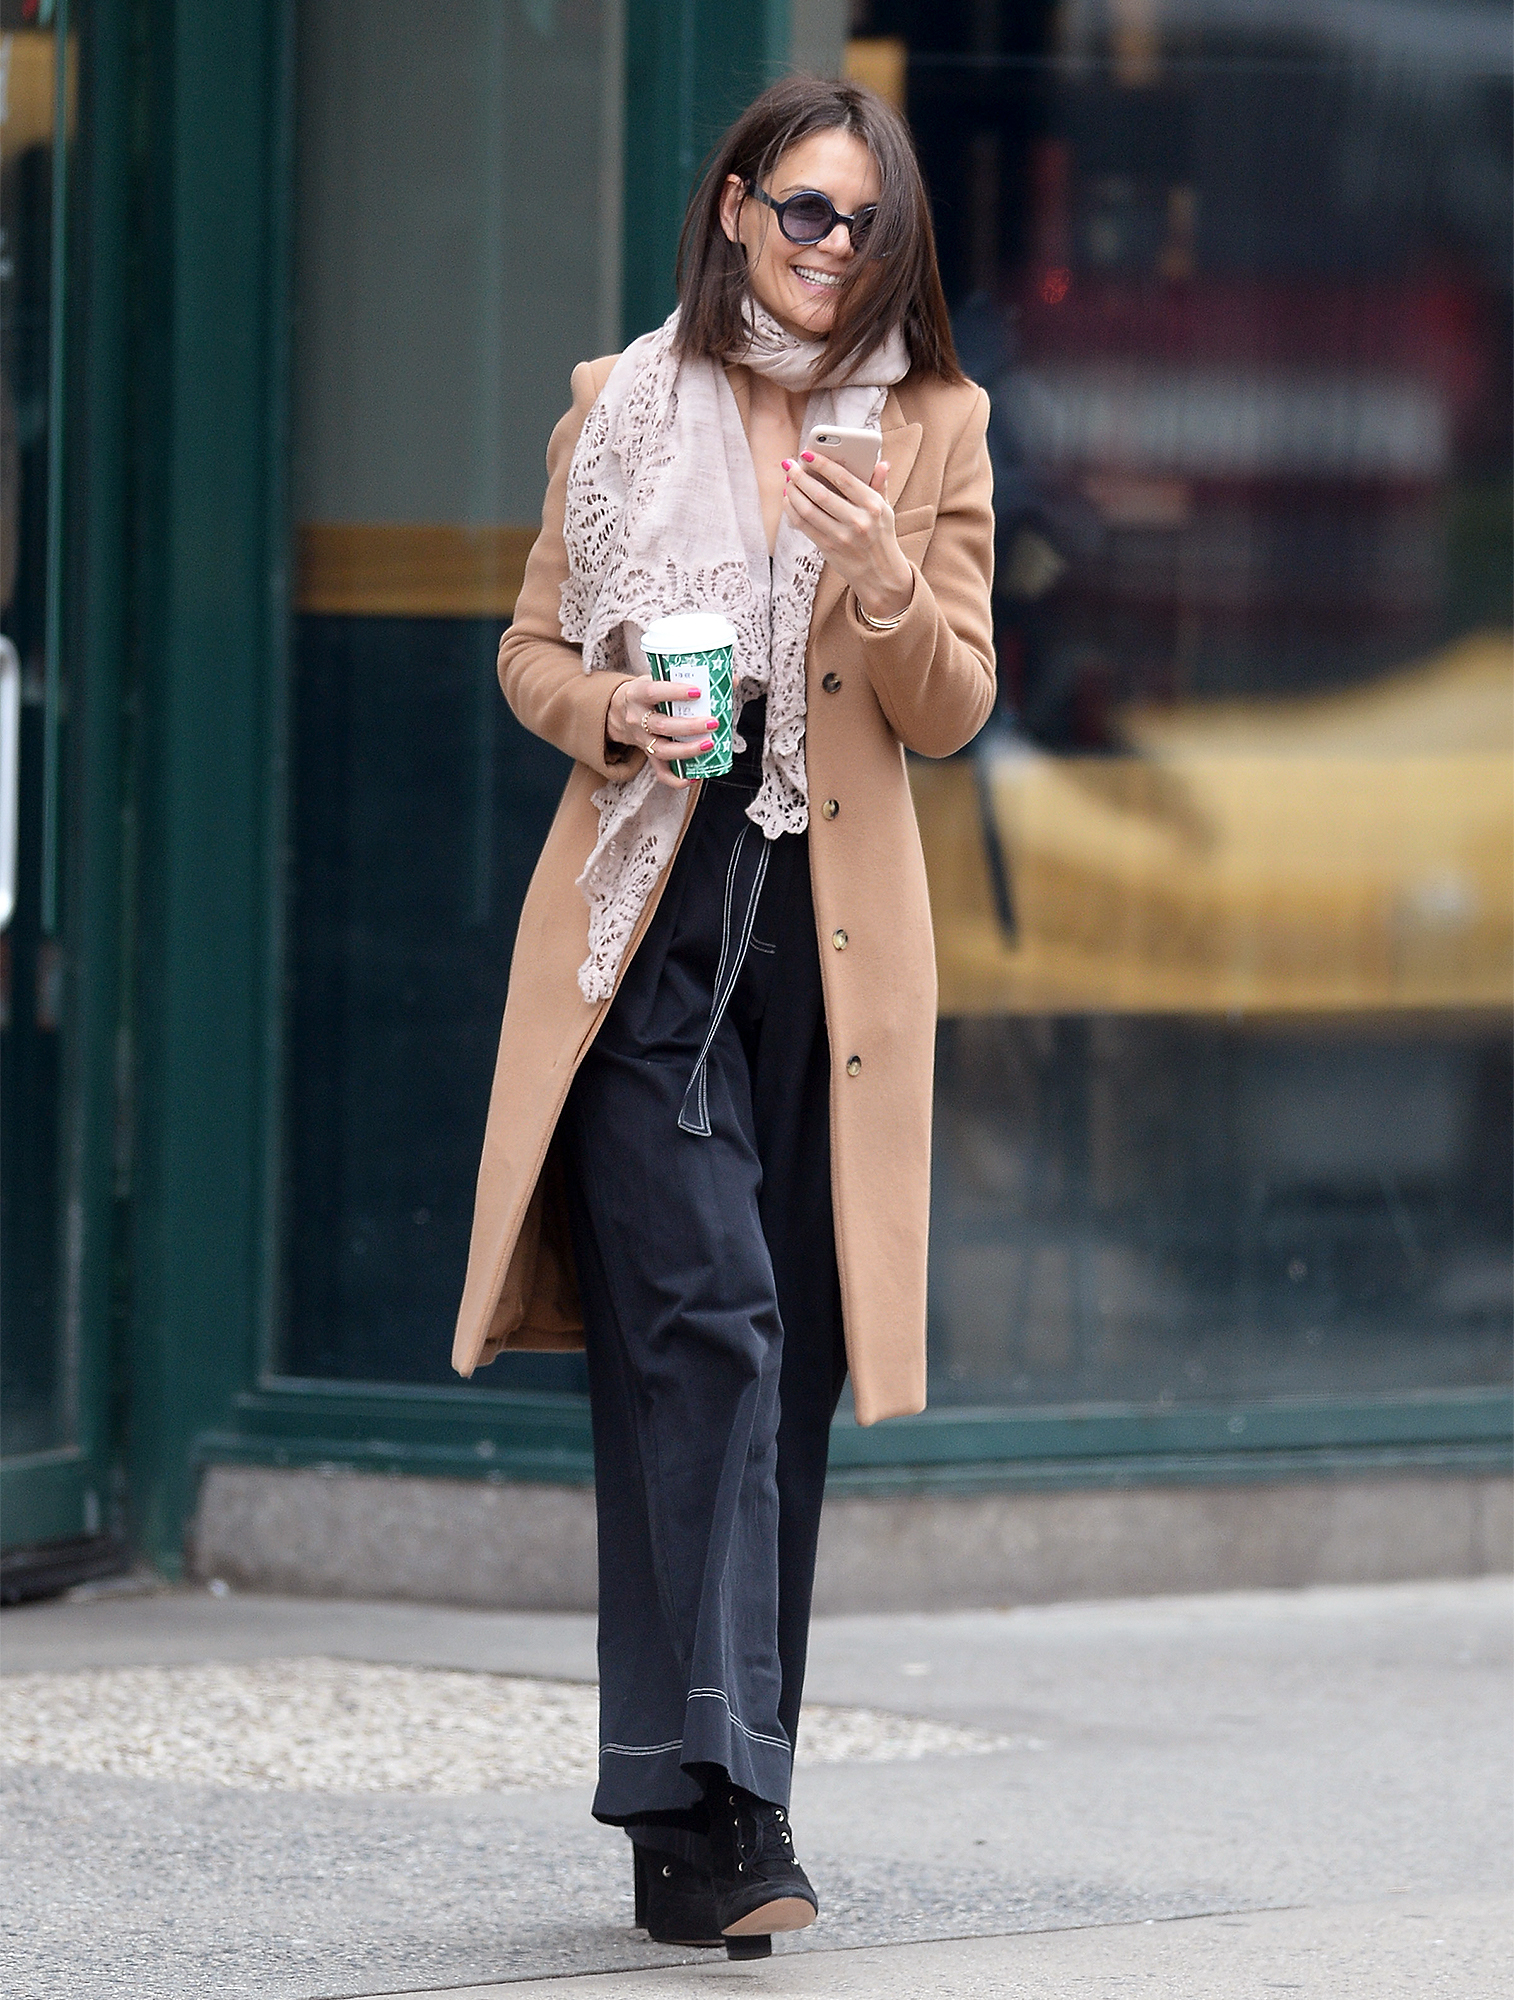 EXCLUSIVE: Katie Holmes is all smiles looking distracted while reading a text on her cellphone while getting her morning coffe in New York City after celebrating Christmas